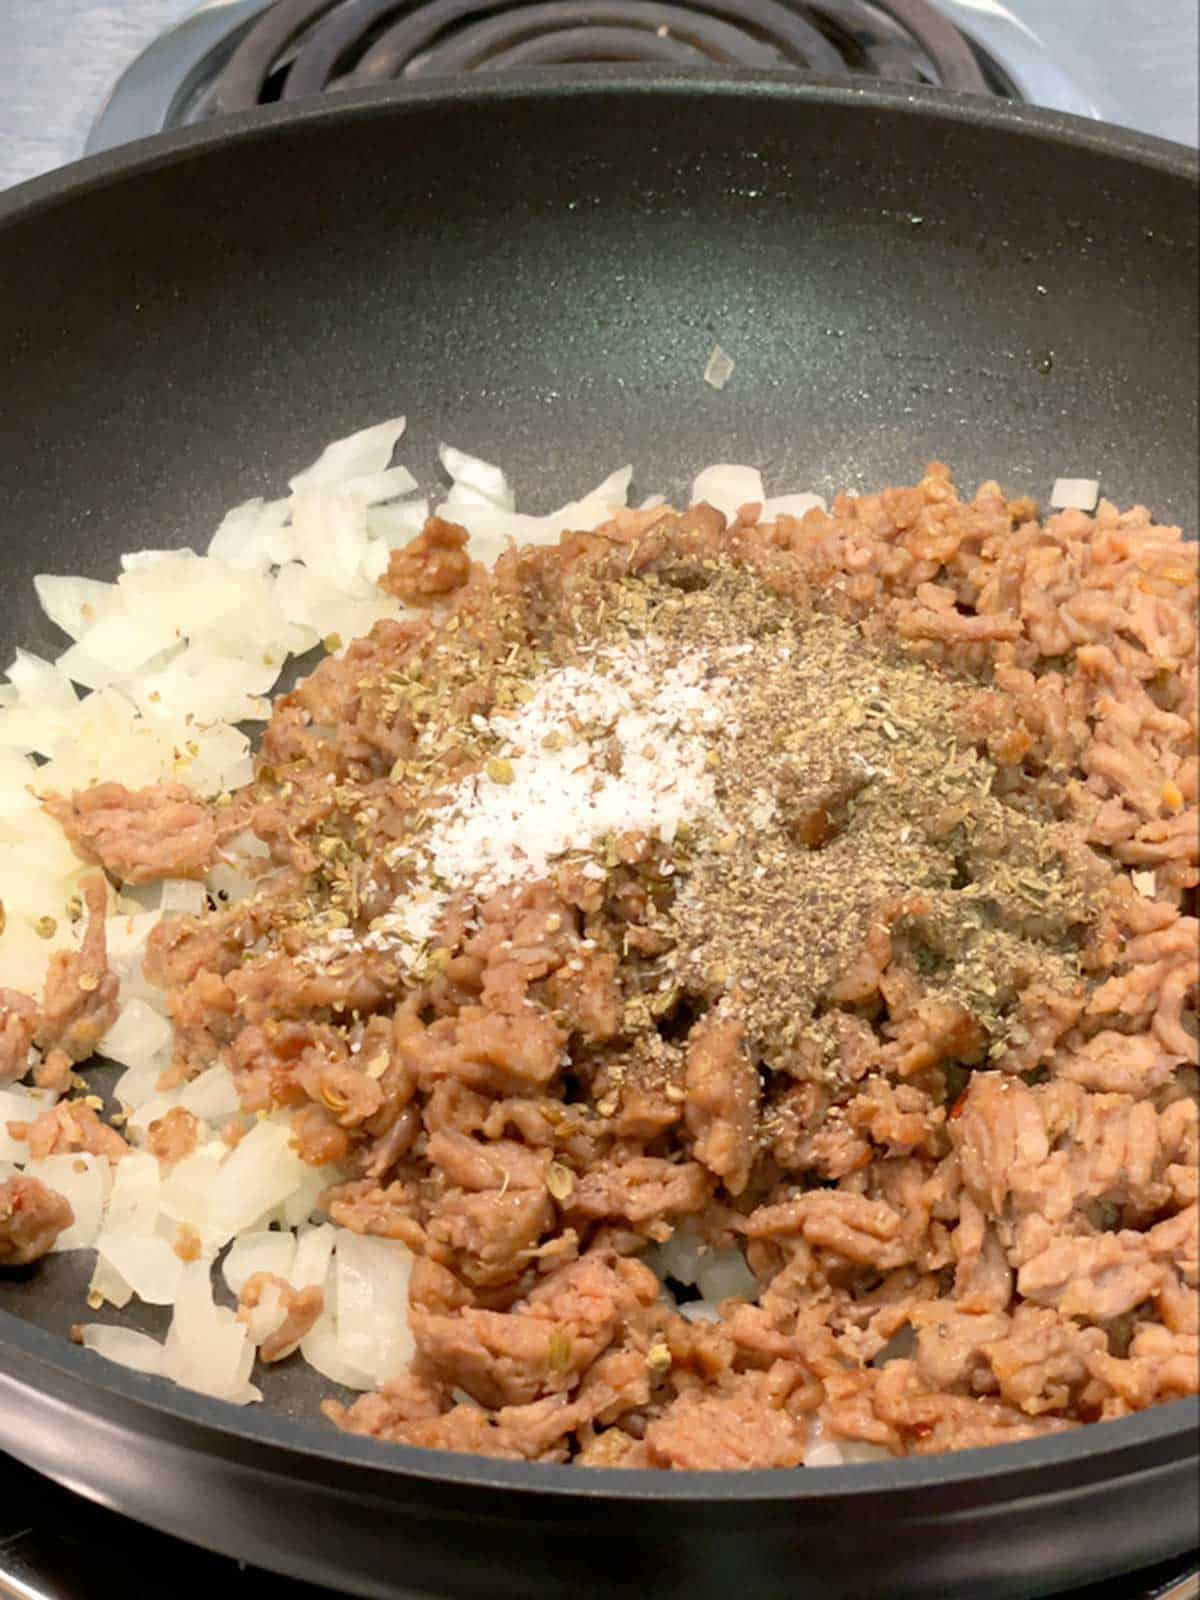 Onions and garlic with sausage, spices, salt and pepper added.